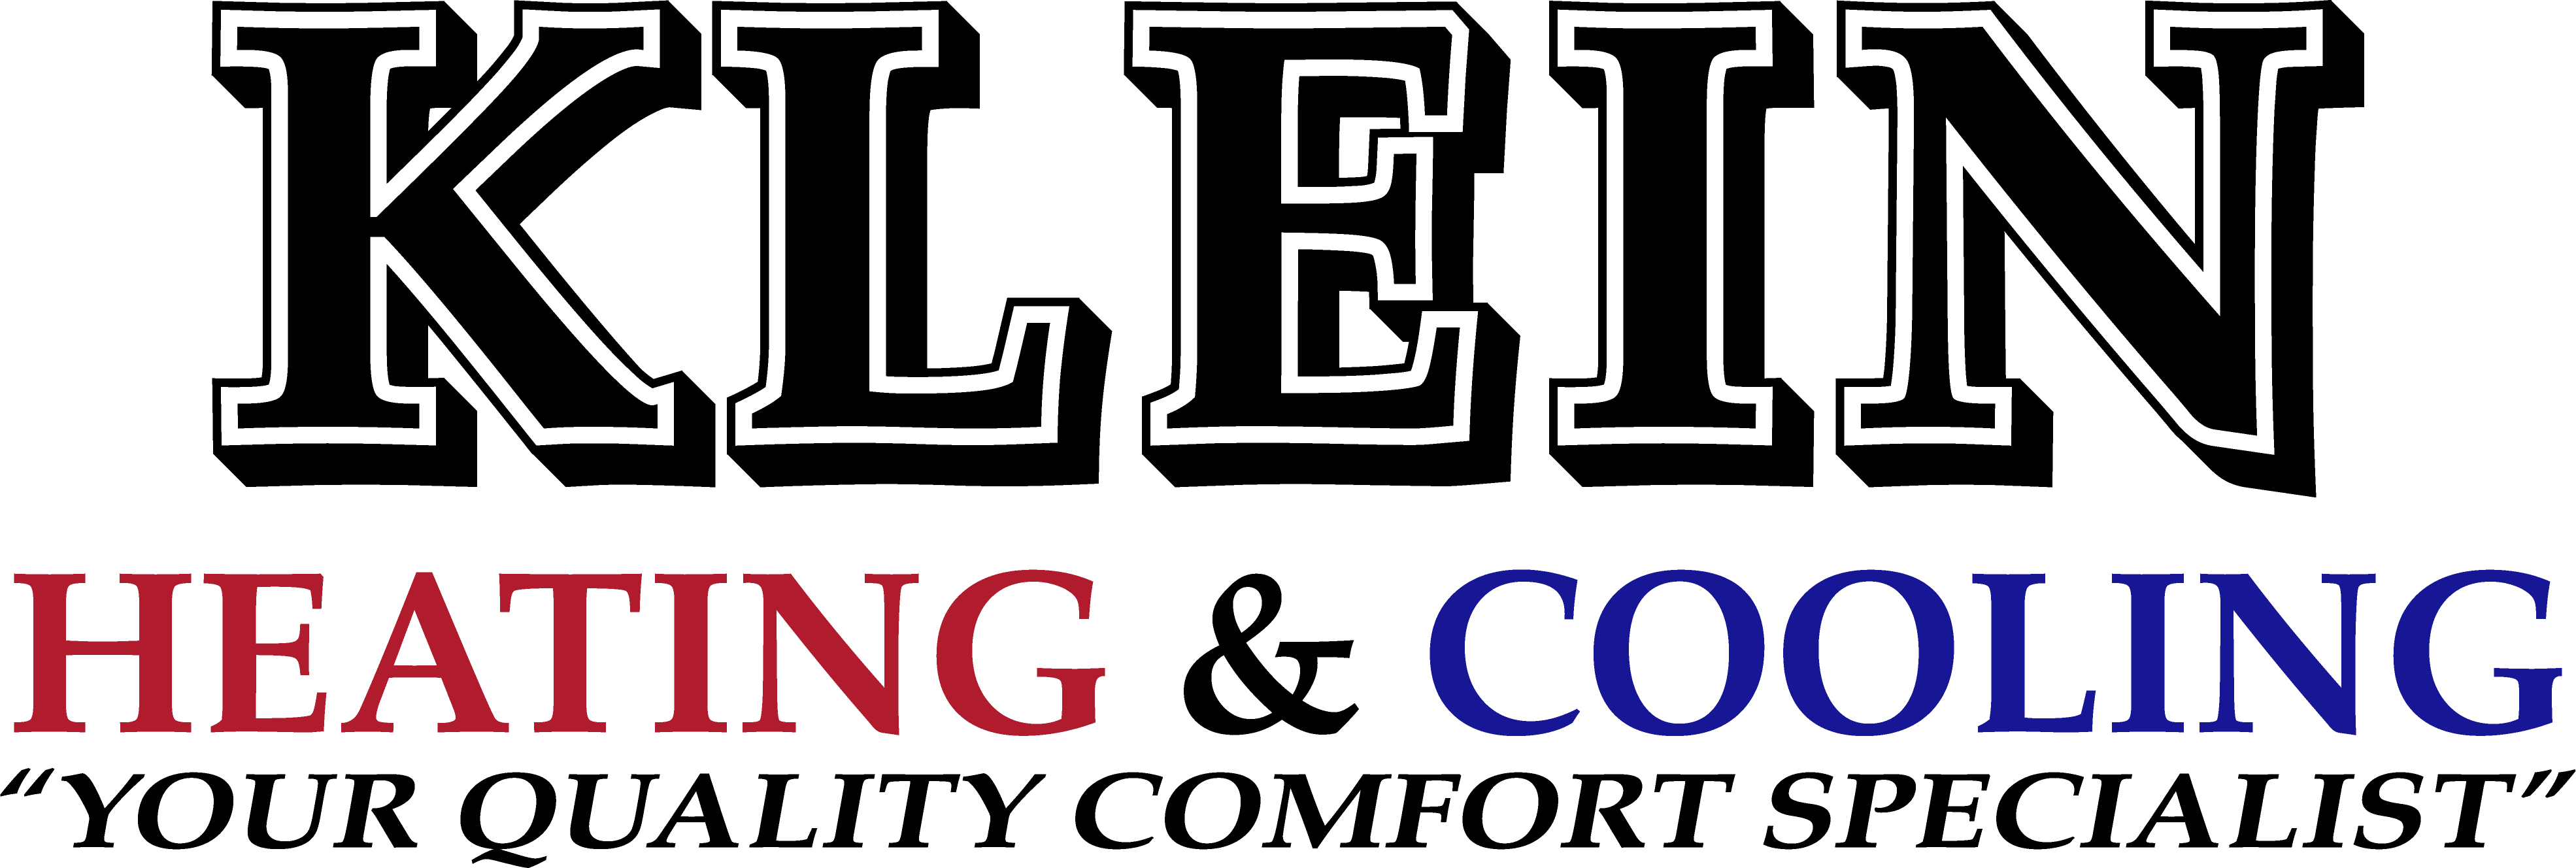 Klein Heating & Cooling, Westerville, Ohio